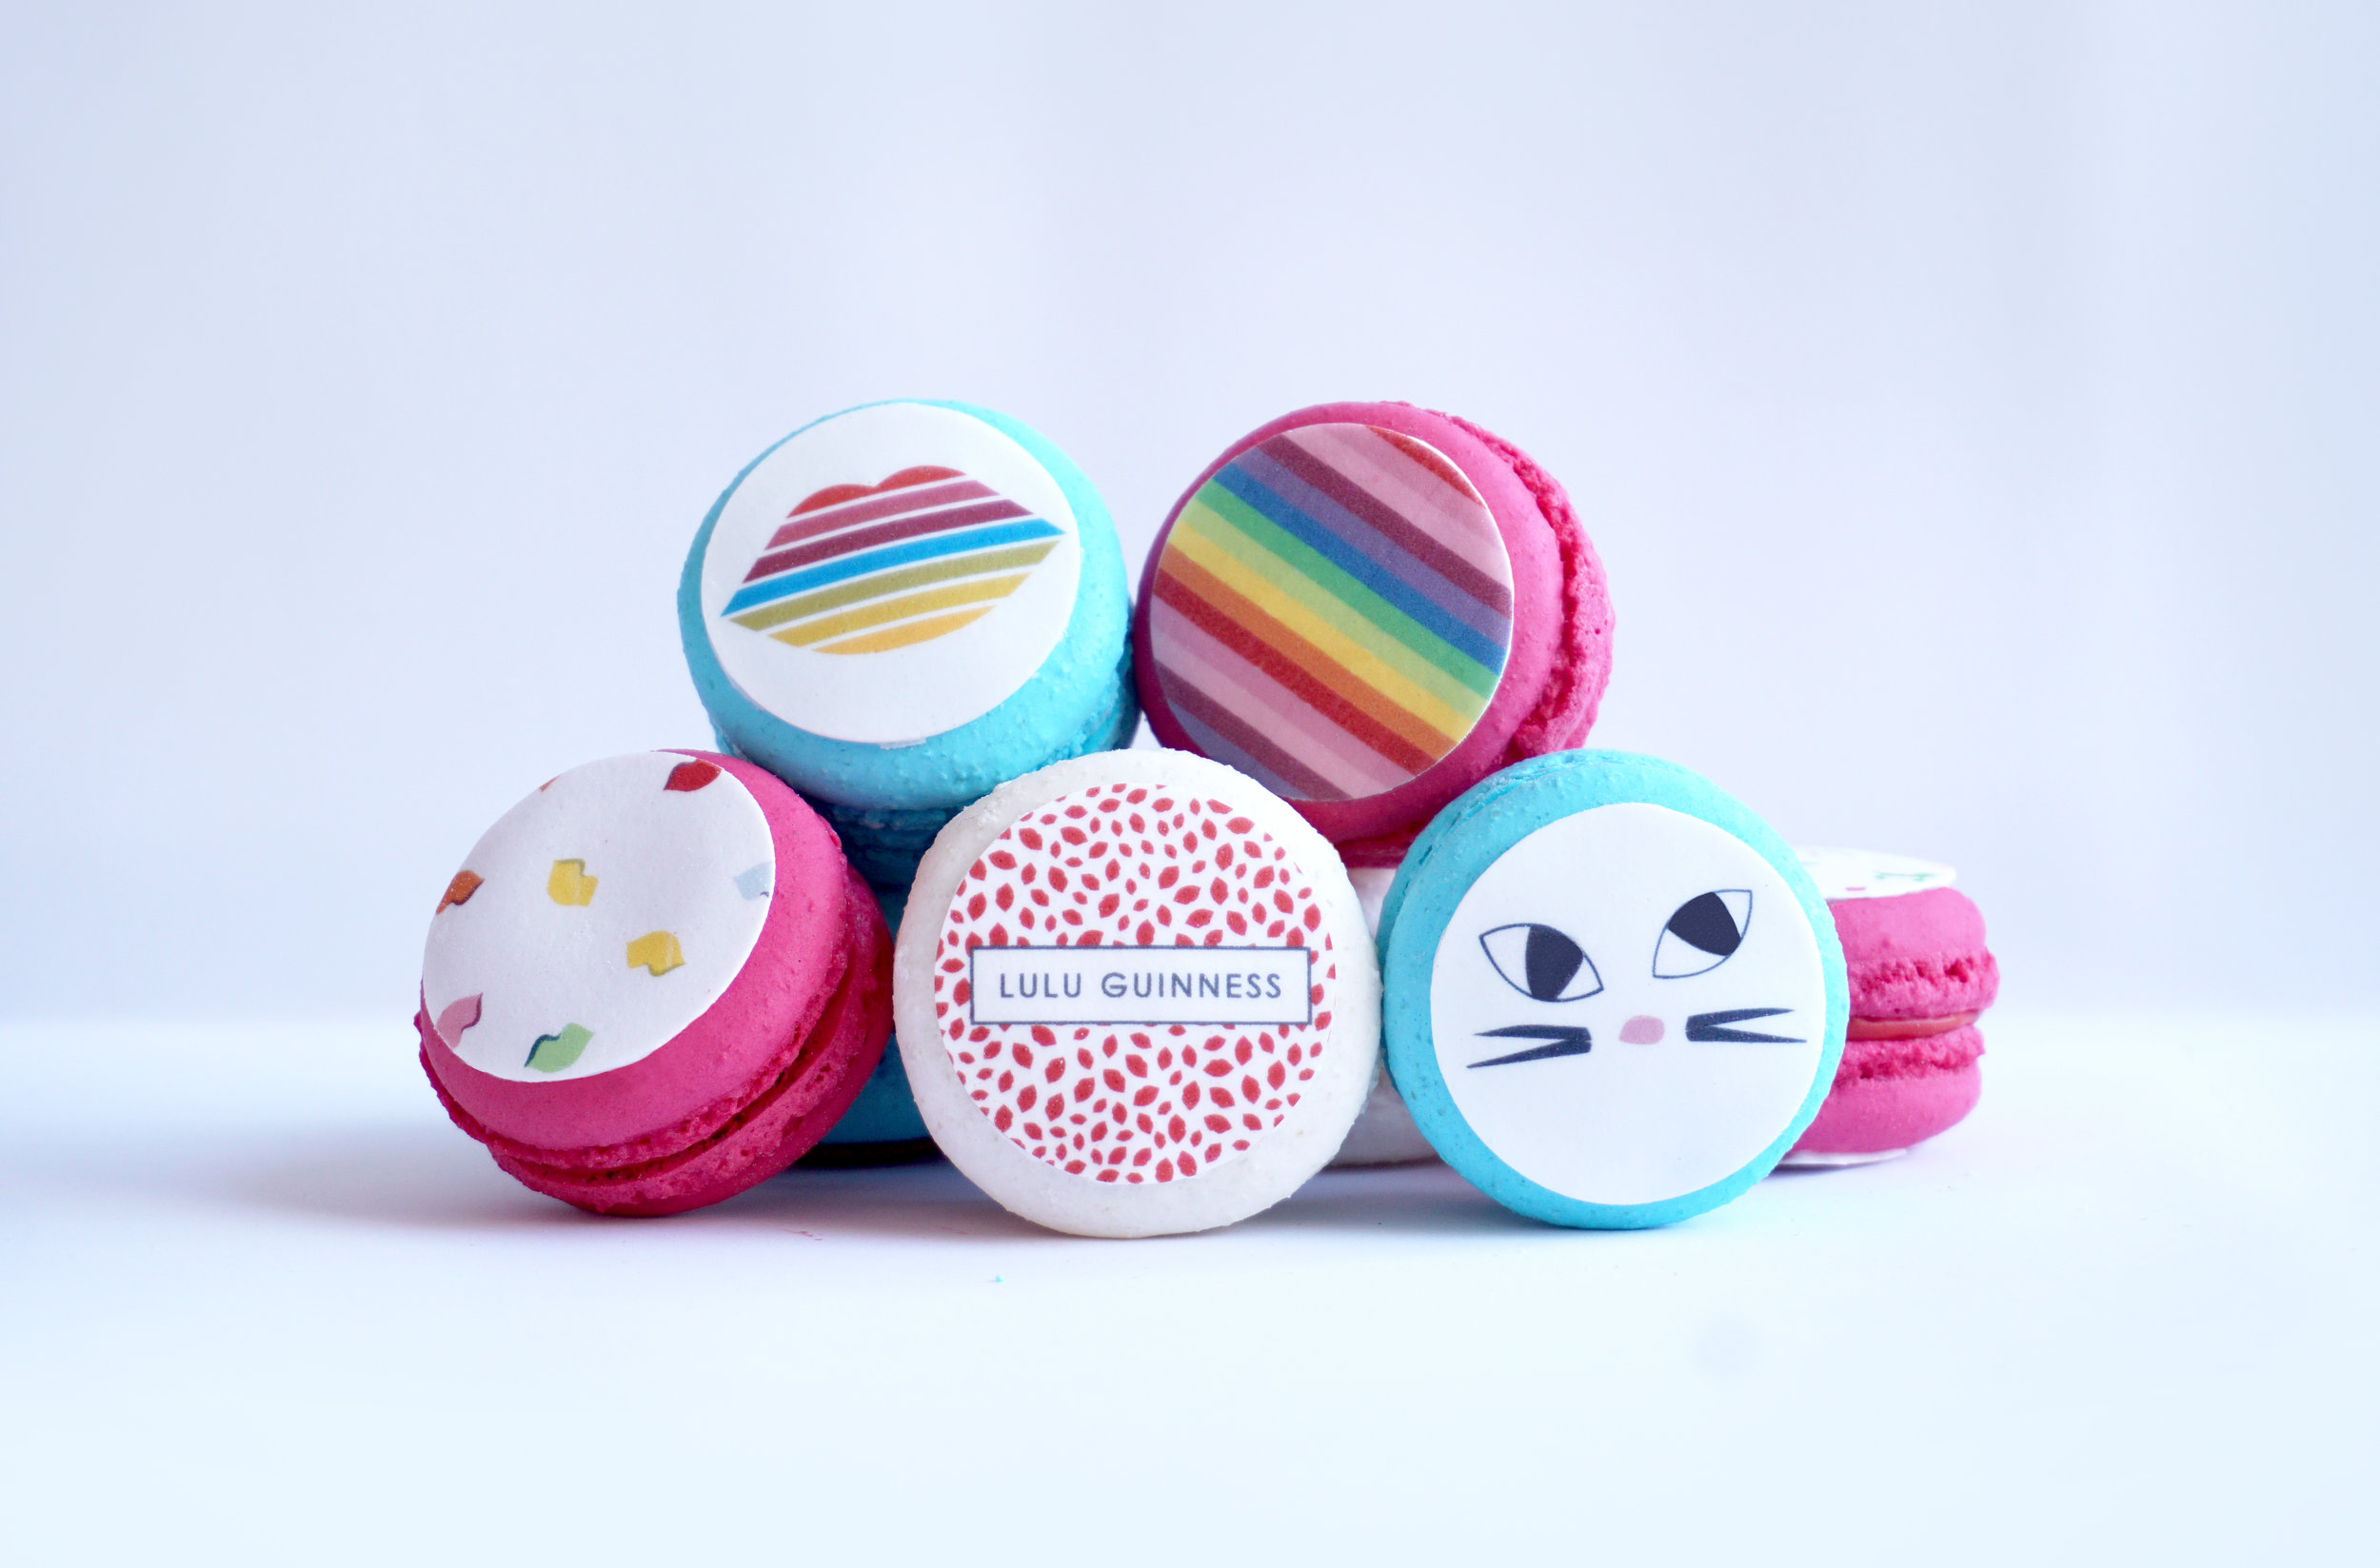 LIMITED EDITION MACARONS - A selection of Lulu's latest designs top our brightly coloured macarons, making the cutest edible statement pieces! Filled with our bestselling flavours, these are available in vanilla, rose and raspberry.